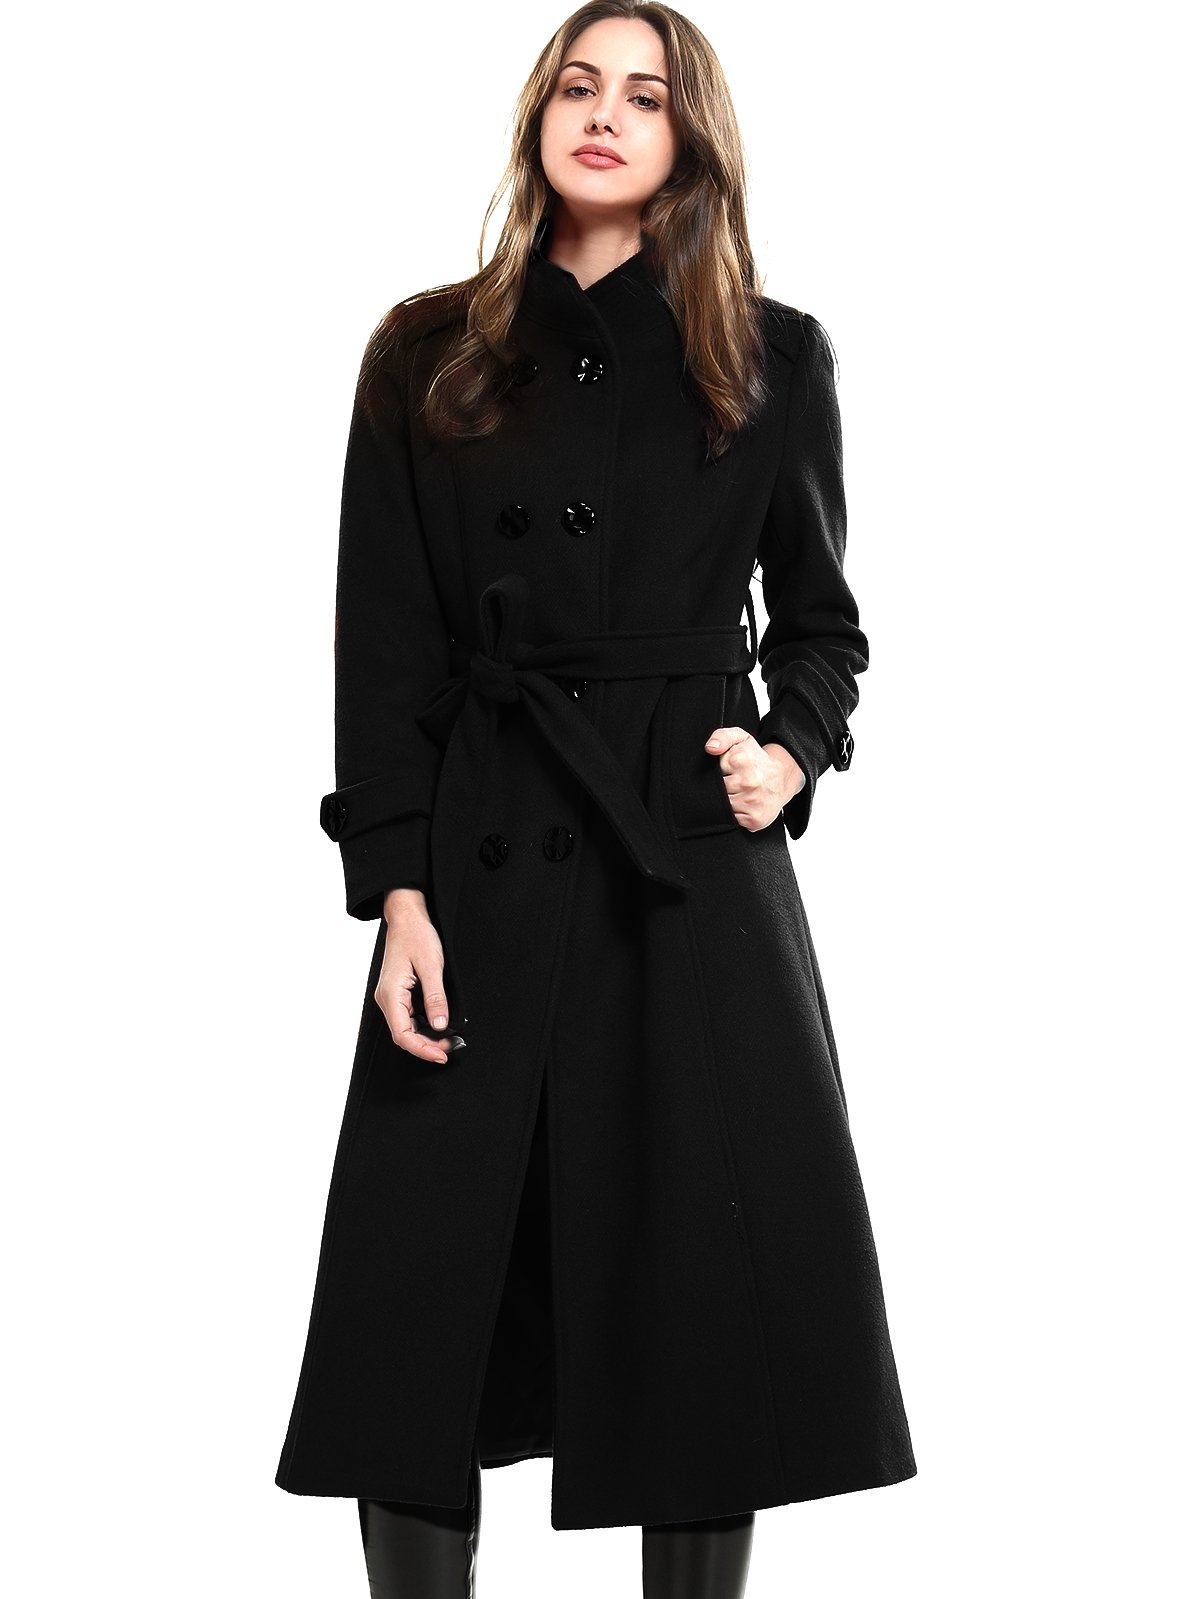 Escalier Women's Wool Trench Coat Double-Breasted Jacket With Belts Black 3XL by Escalier